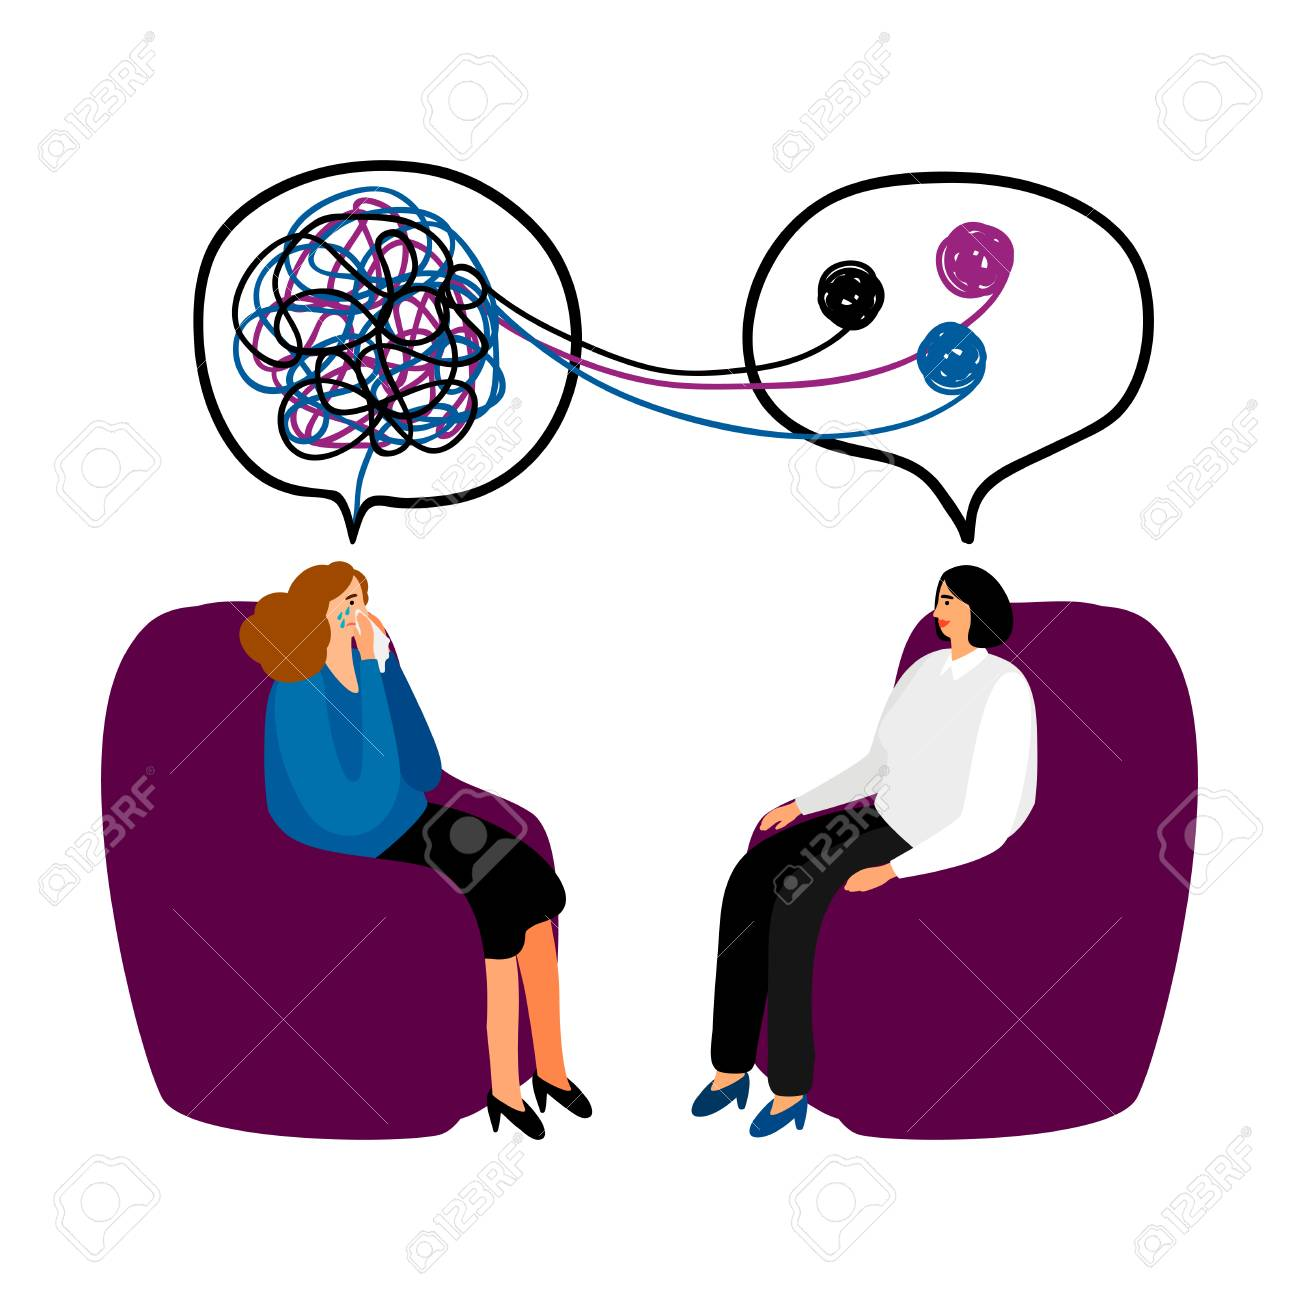 Psychotherapy concept illustration - 104067840